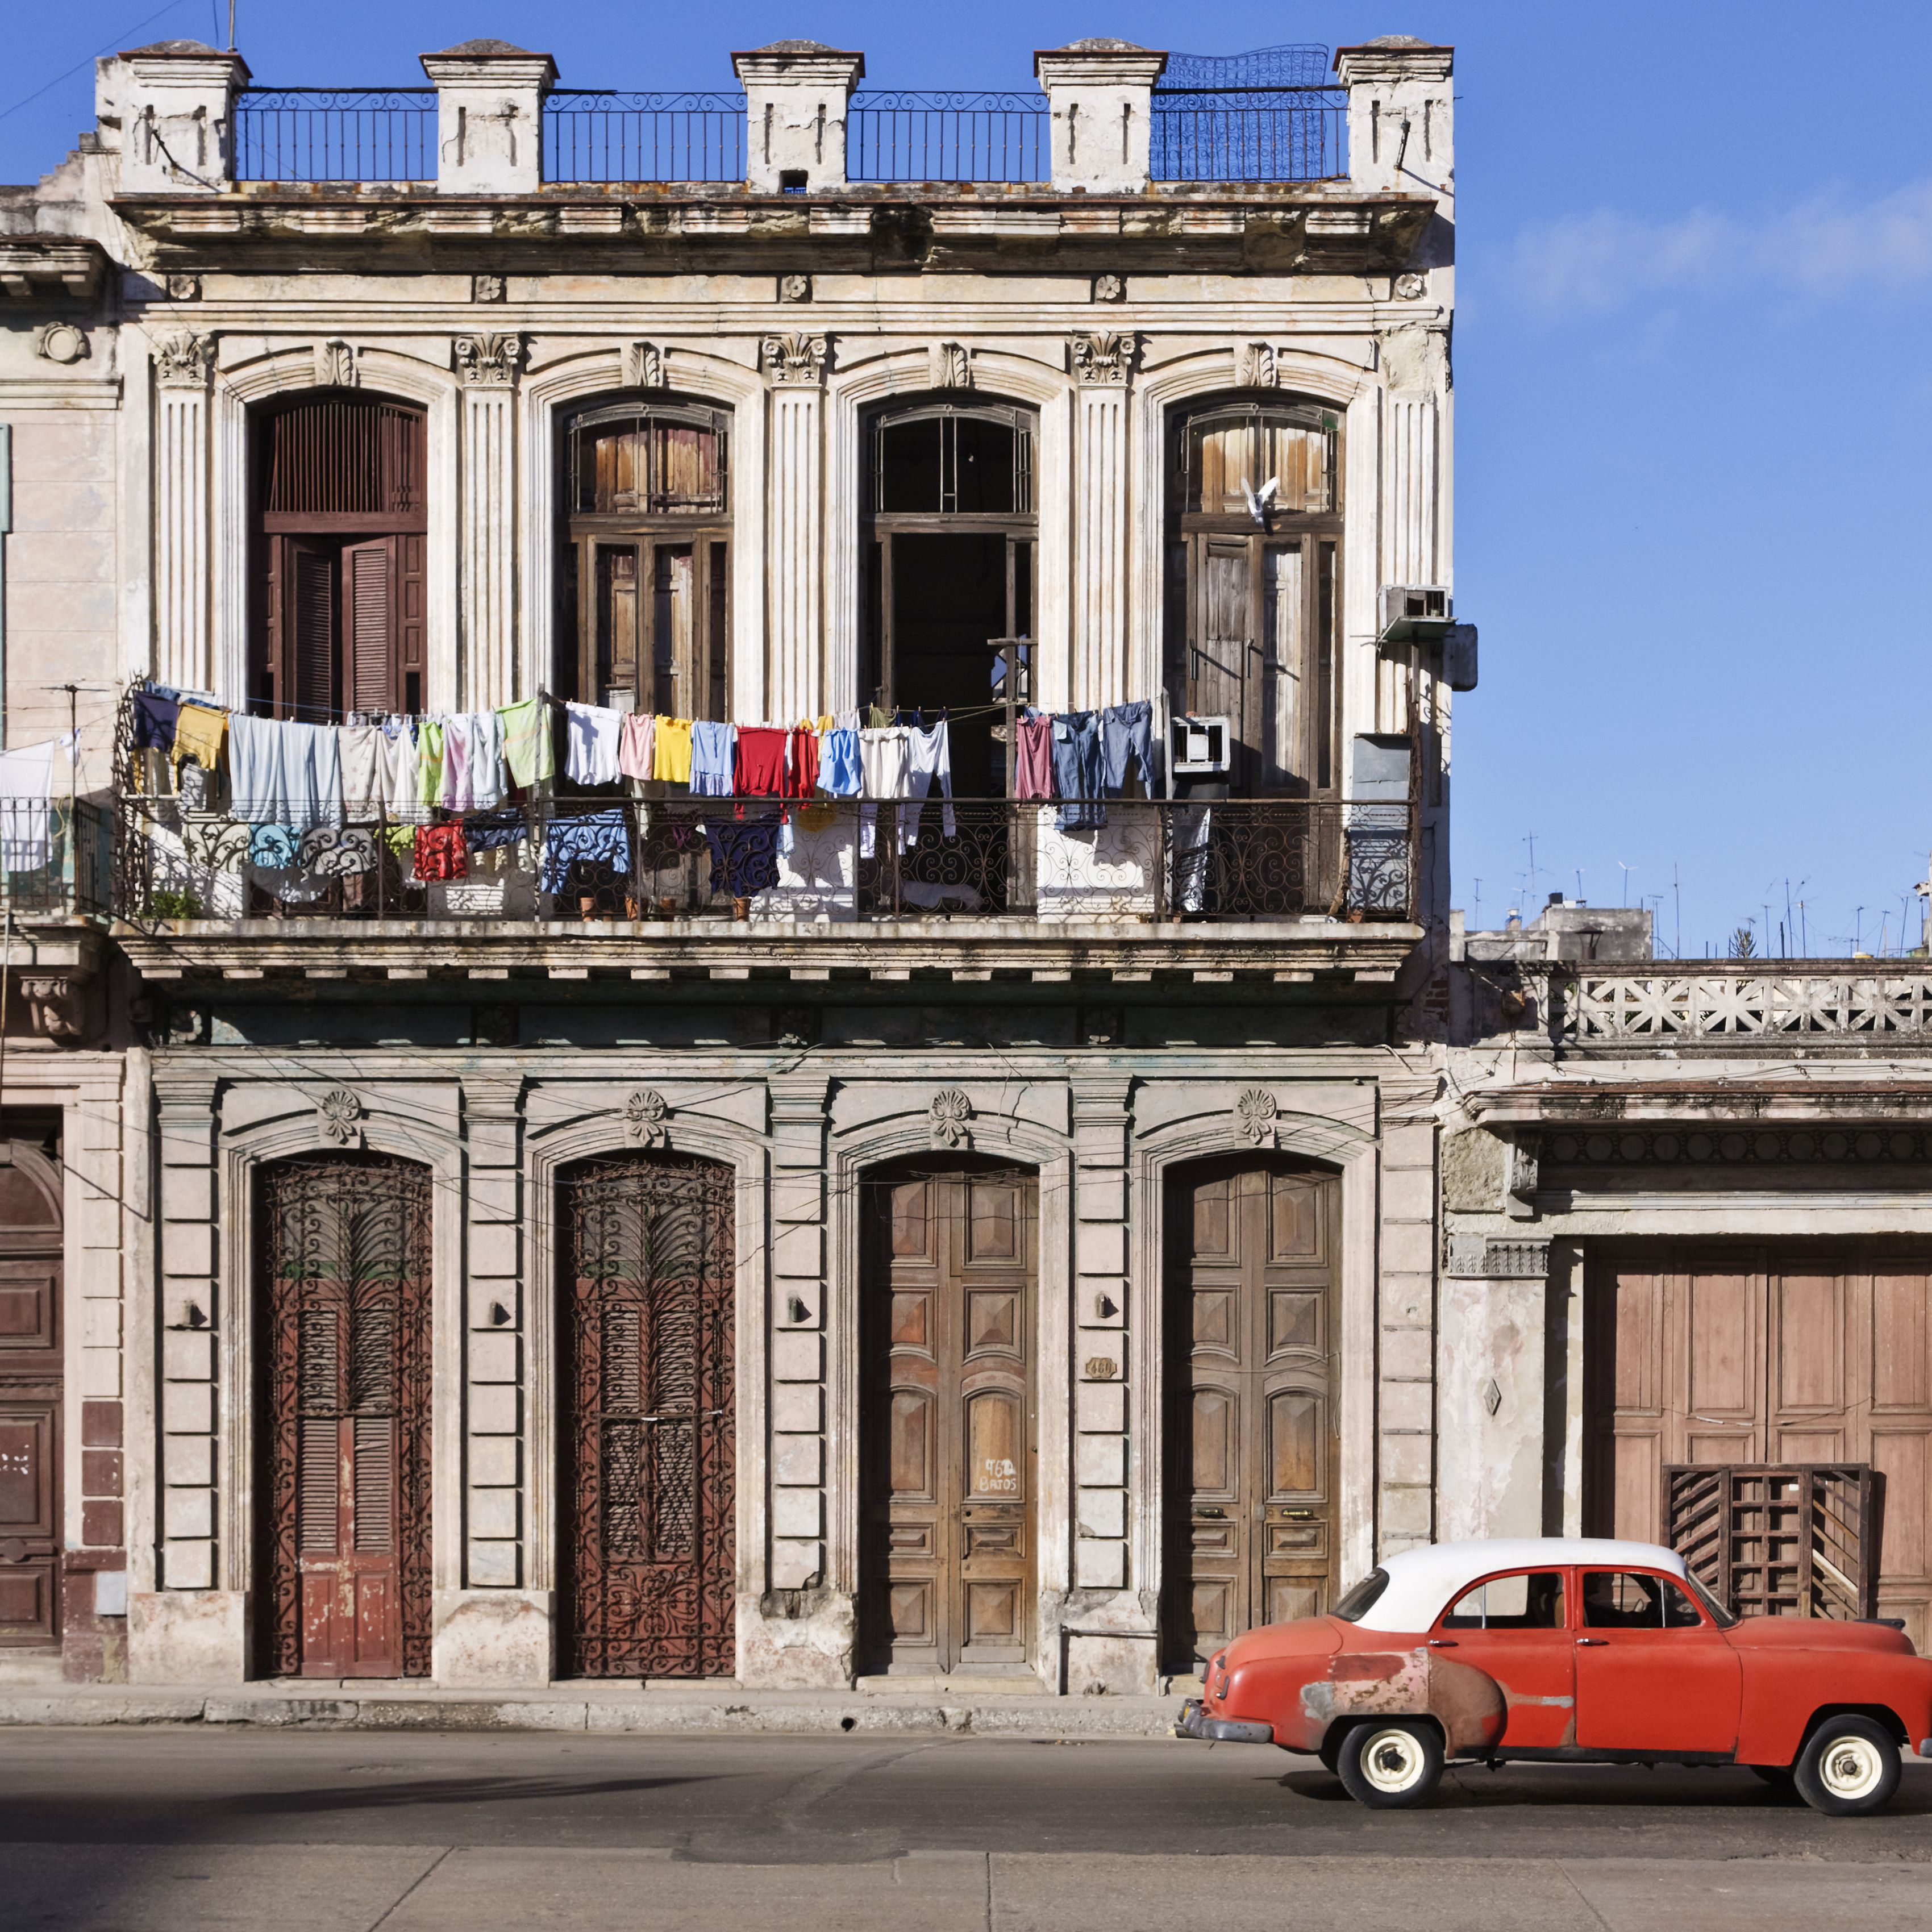 What Americans Traveling to Cuba Need to Know